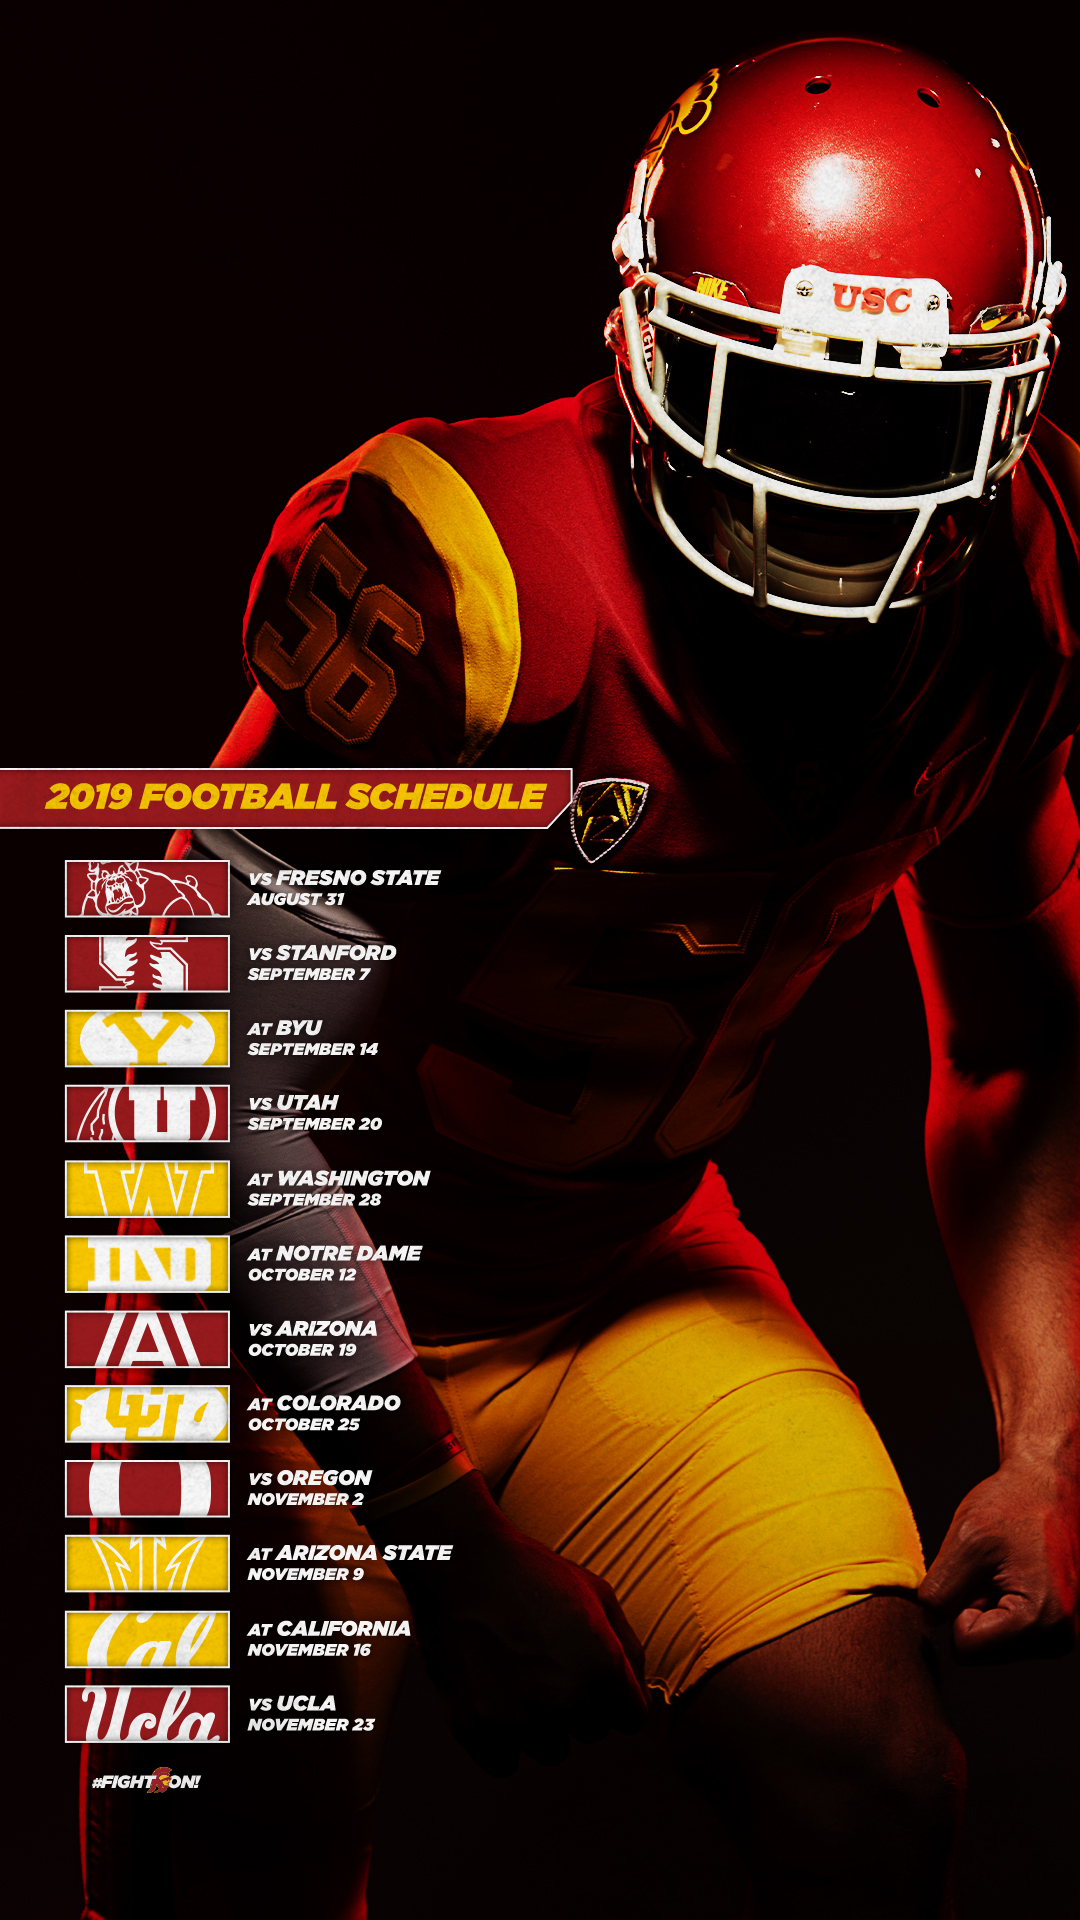 2019 Usc Football Schedule USC Trojans Phone Wallpapers   USC Athletics